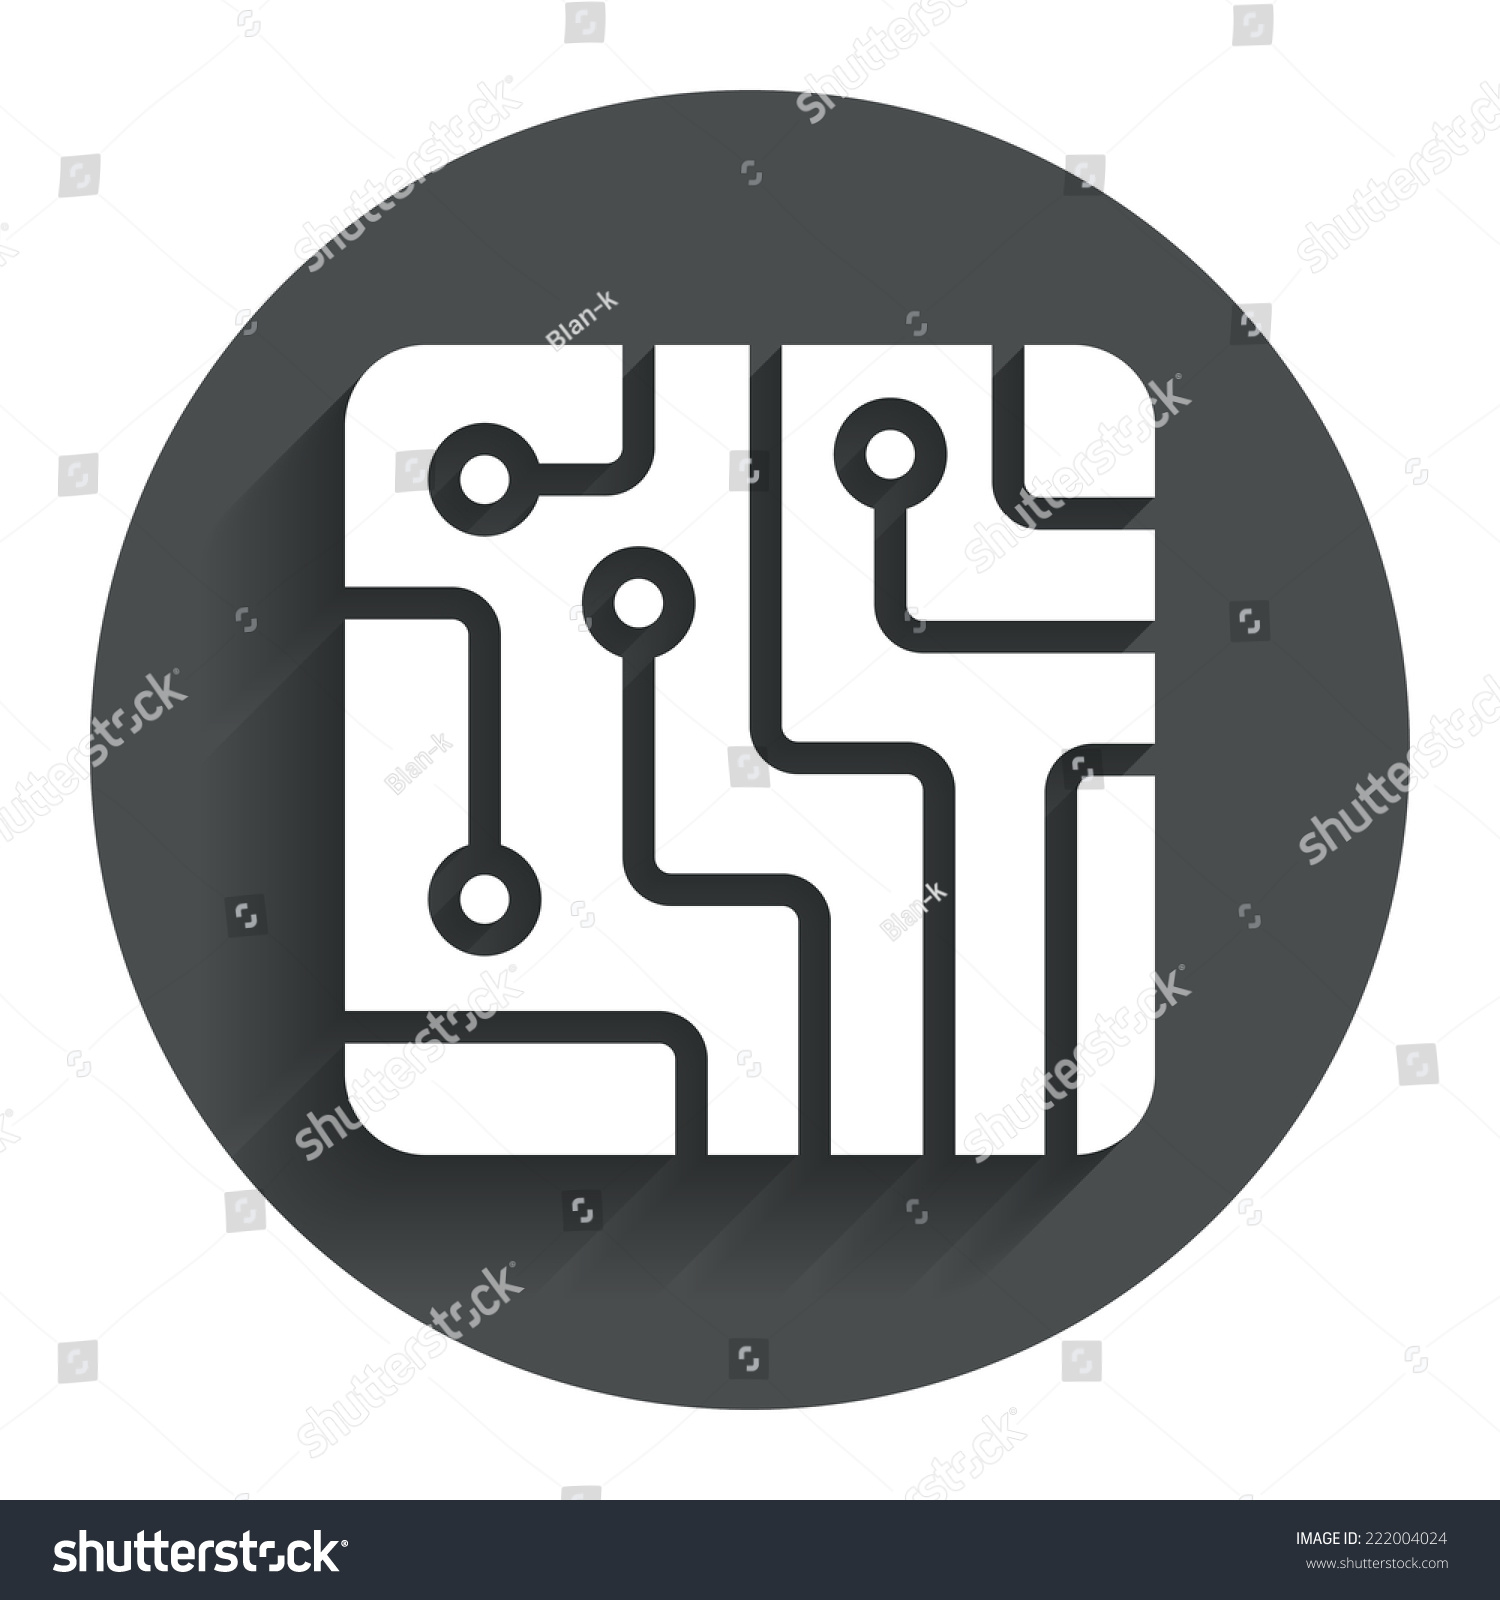 Circuit Board Sign Icon Technology Scheme Stock Vector Royalty Free Boards With Clock Hands Image Square Symbol Circle Flat Button Shadow